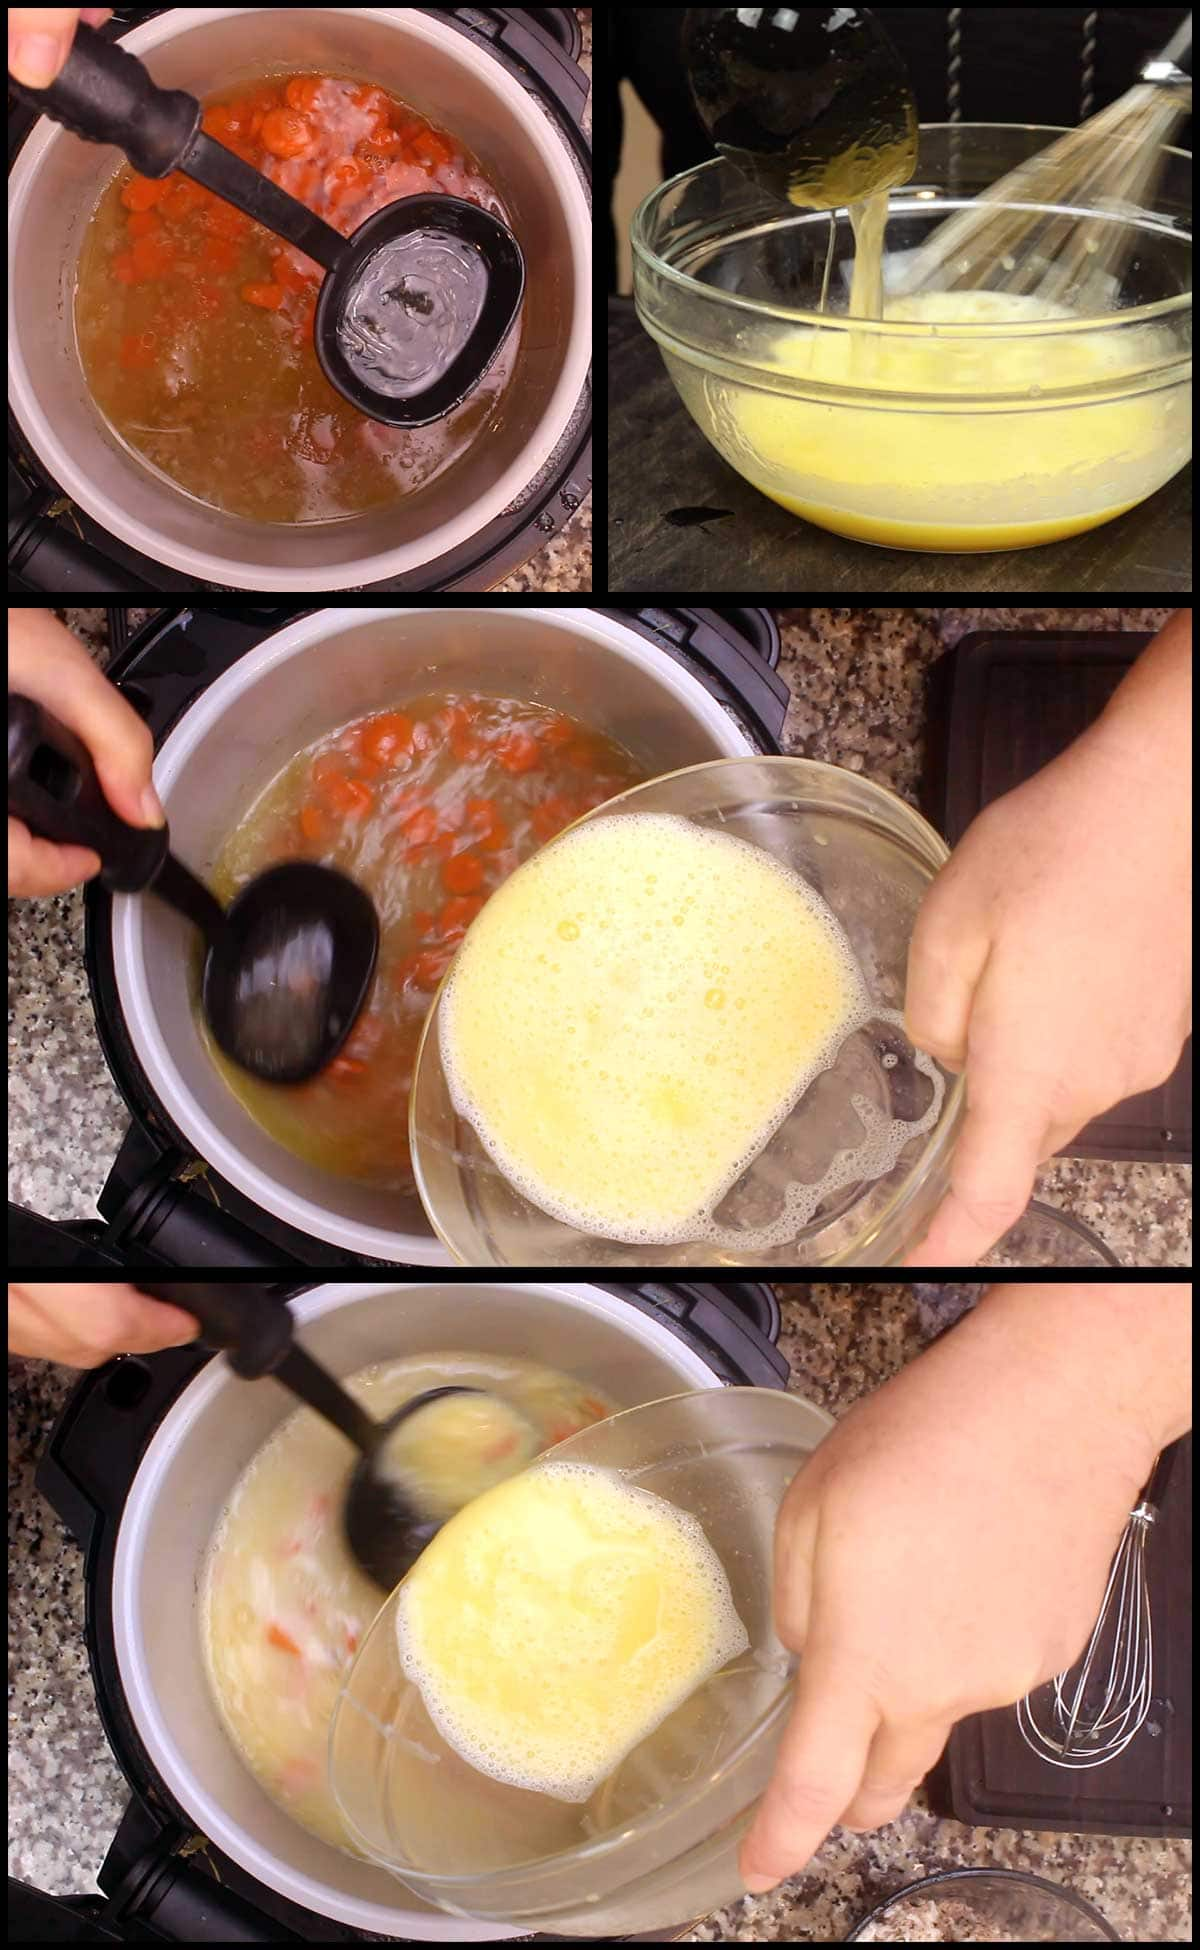 tempering the lemon sauce and adding it to the soup